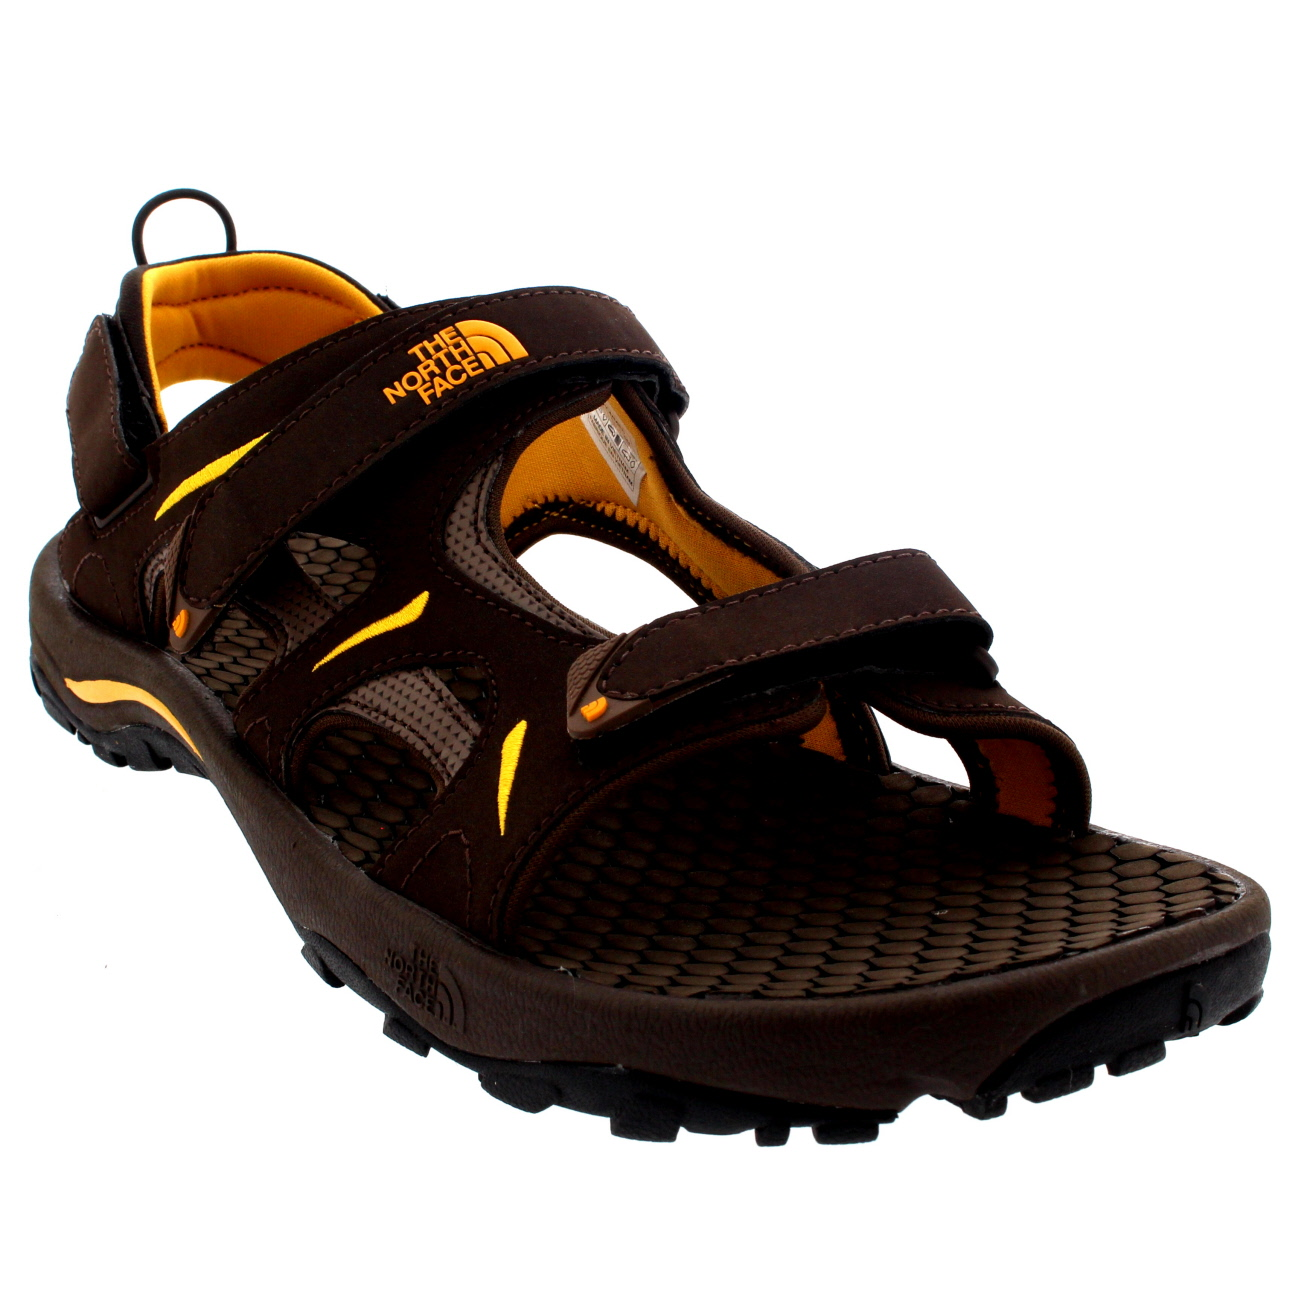 31241feb7970 The North Face Hedgehog Sandals. Images  Zoom